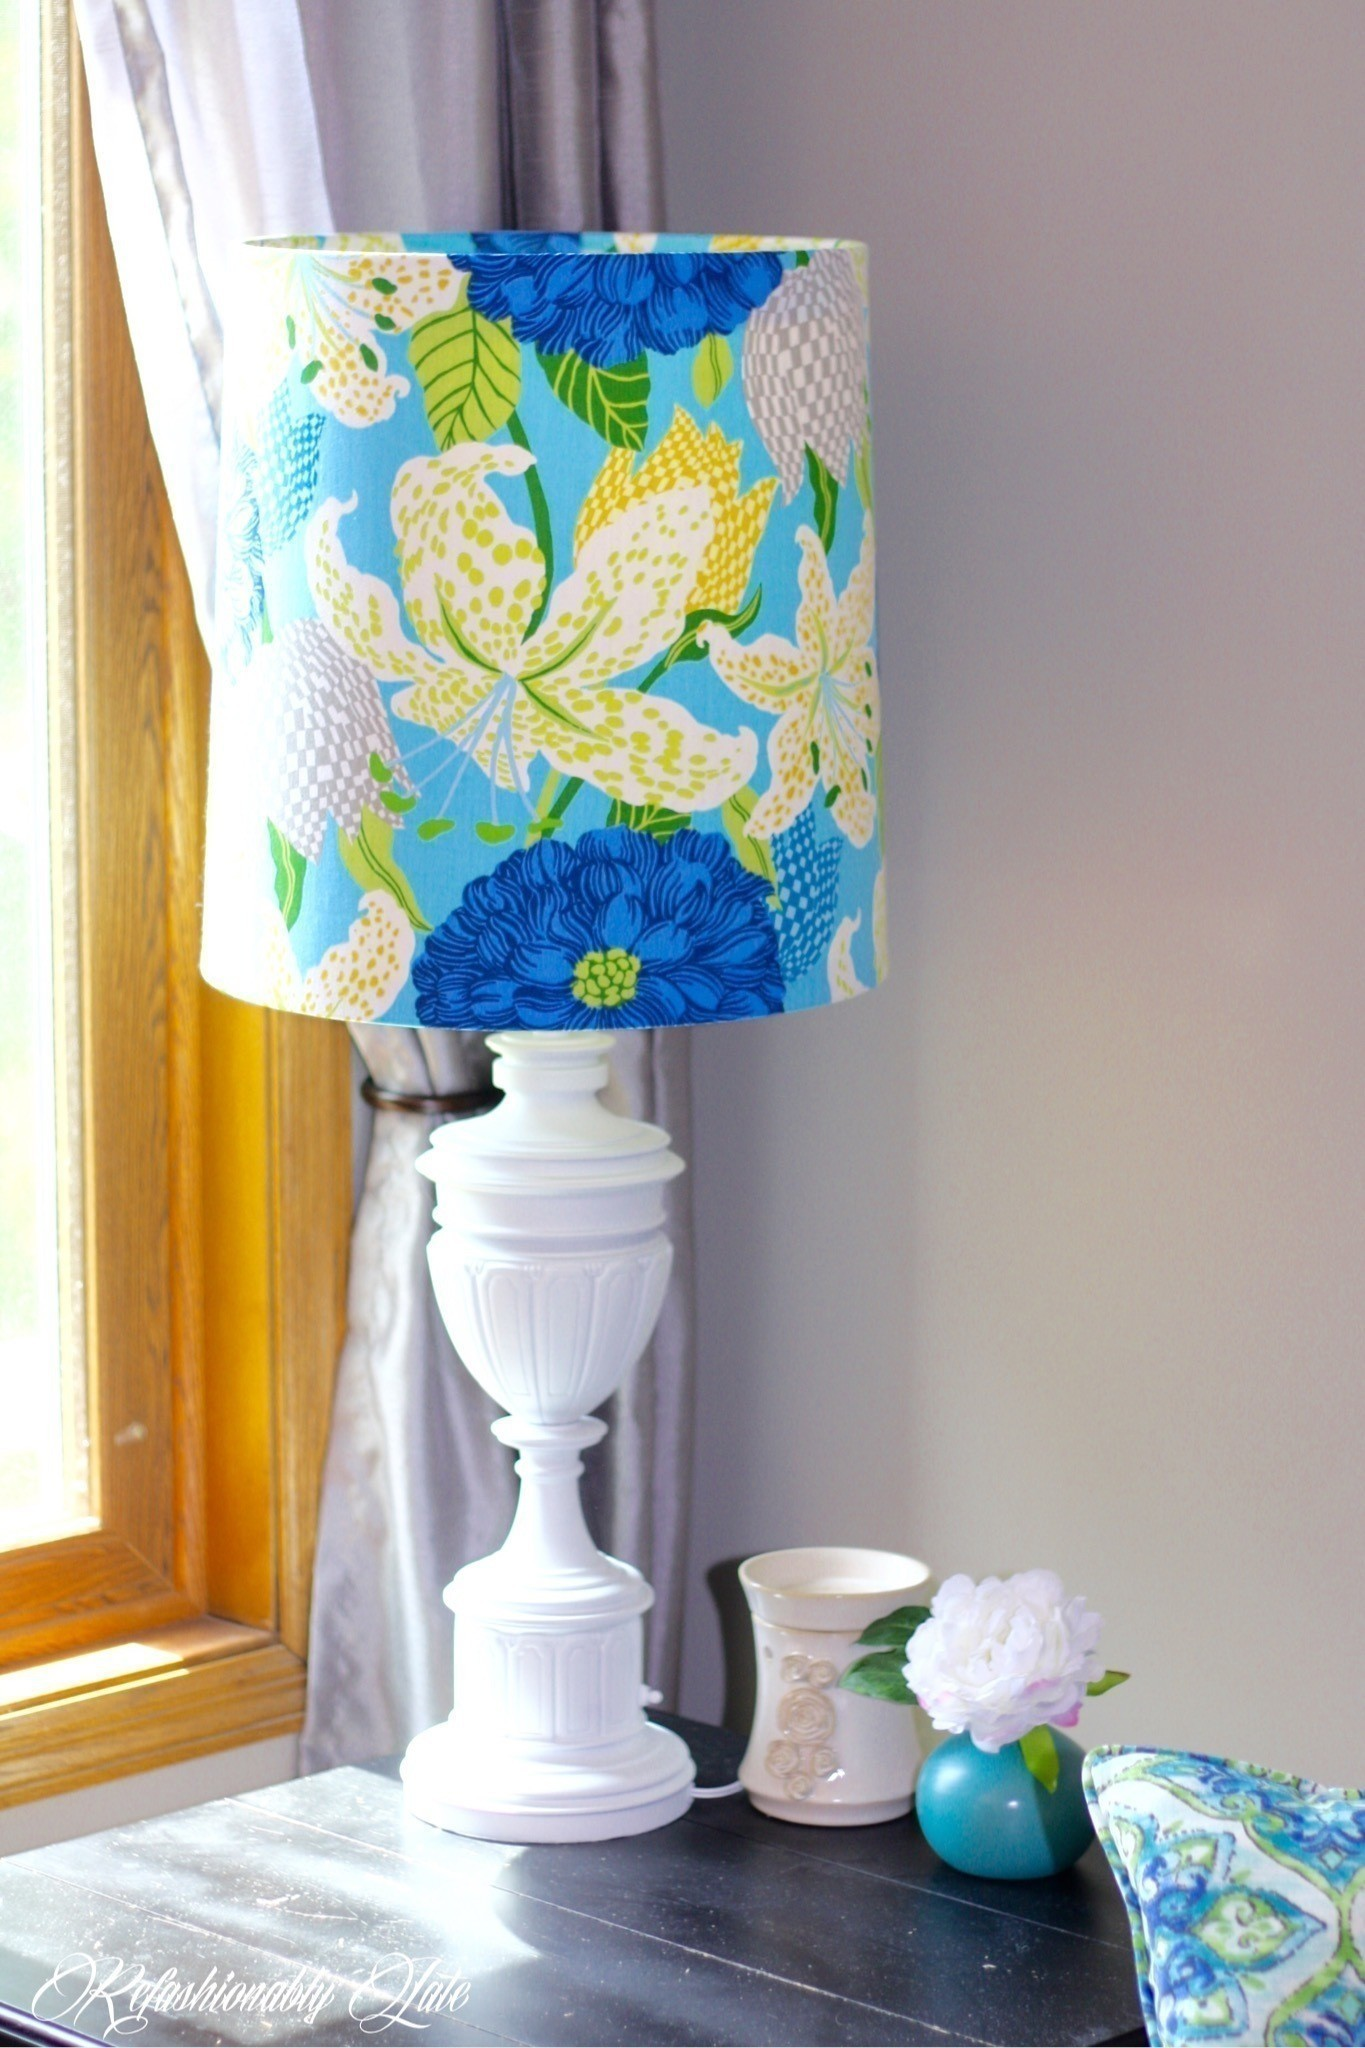 Diy Lamp Revamp · How To Make A Lamp / Lampshade ... The Art Of Getting By Drawings